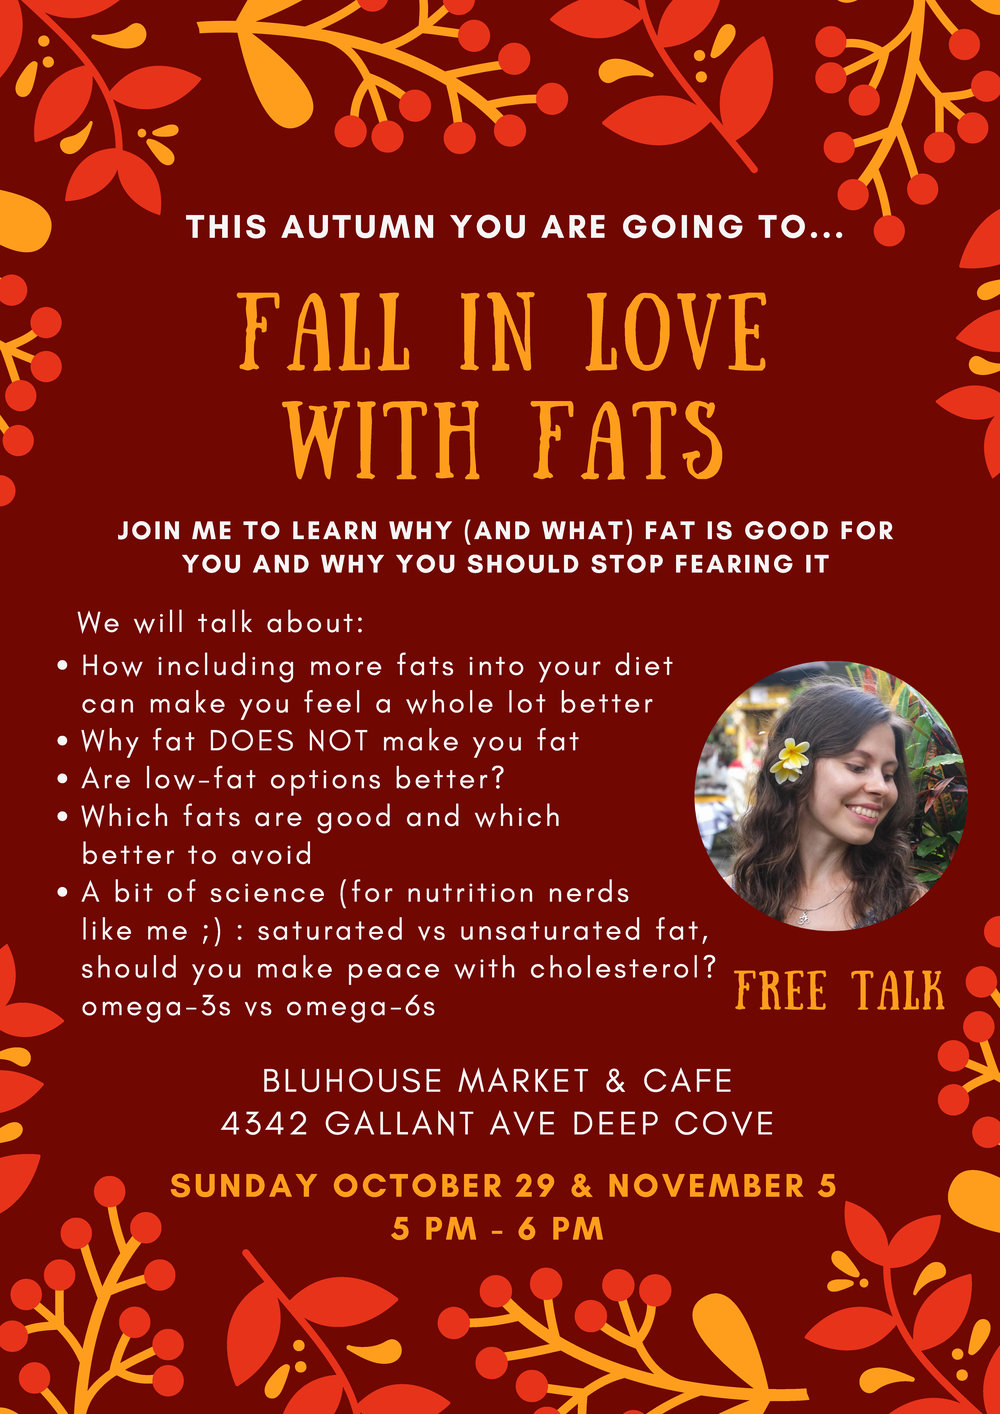 Fall in love with fats.jpg